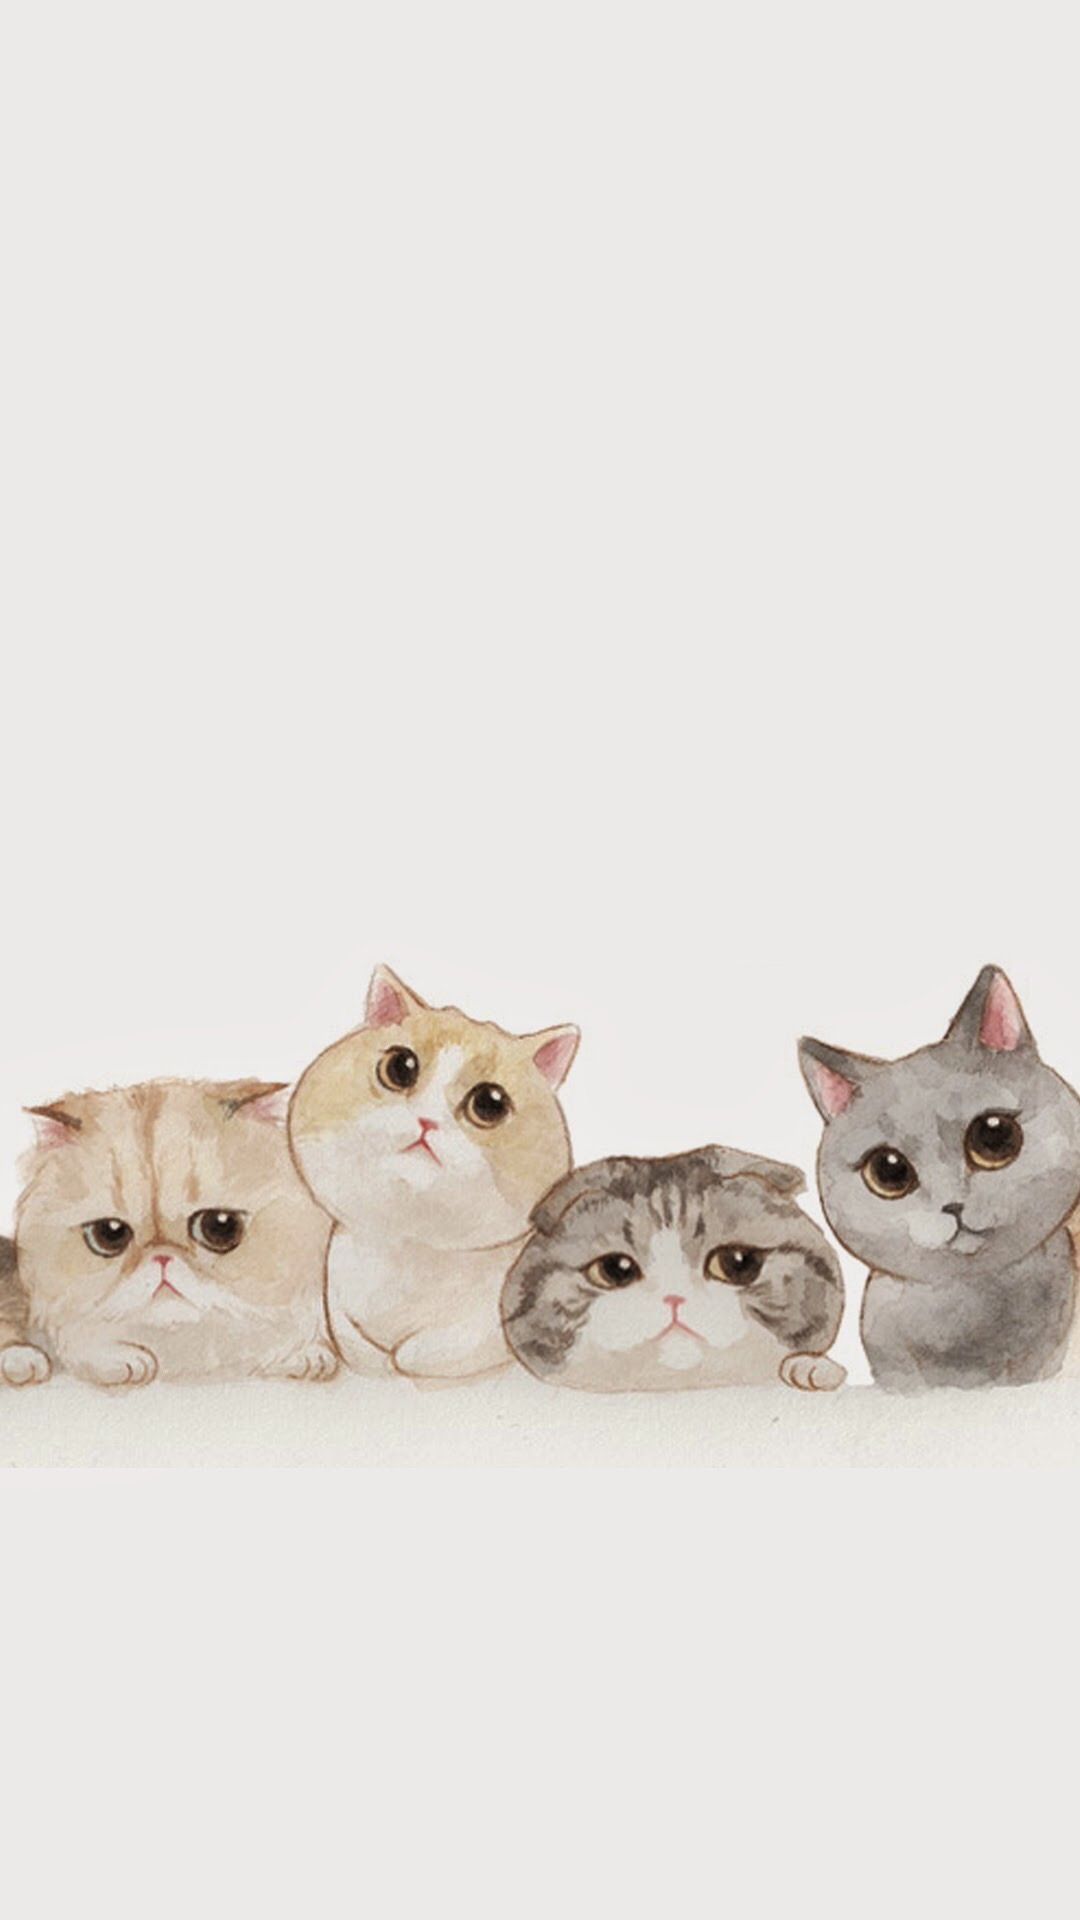 pin by design life art on animals pinterest wallpaper cat and